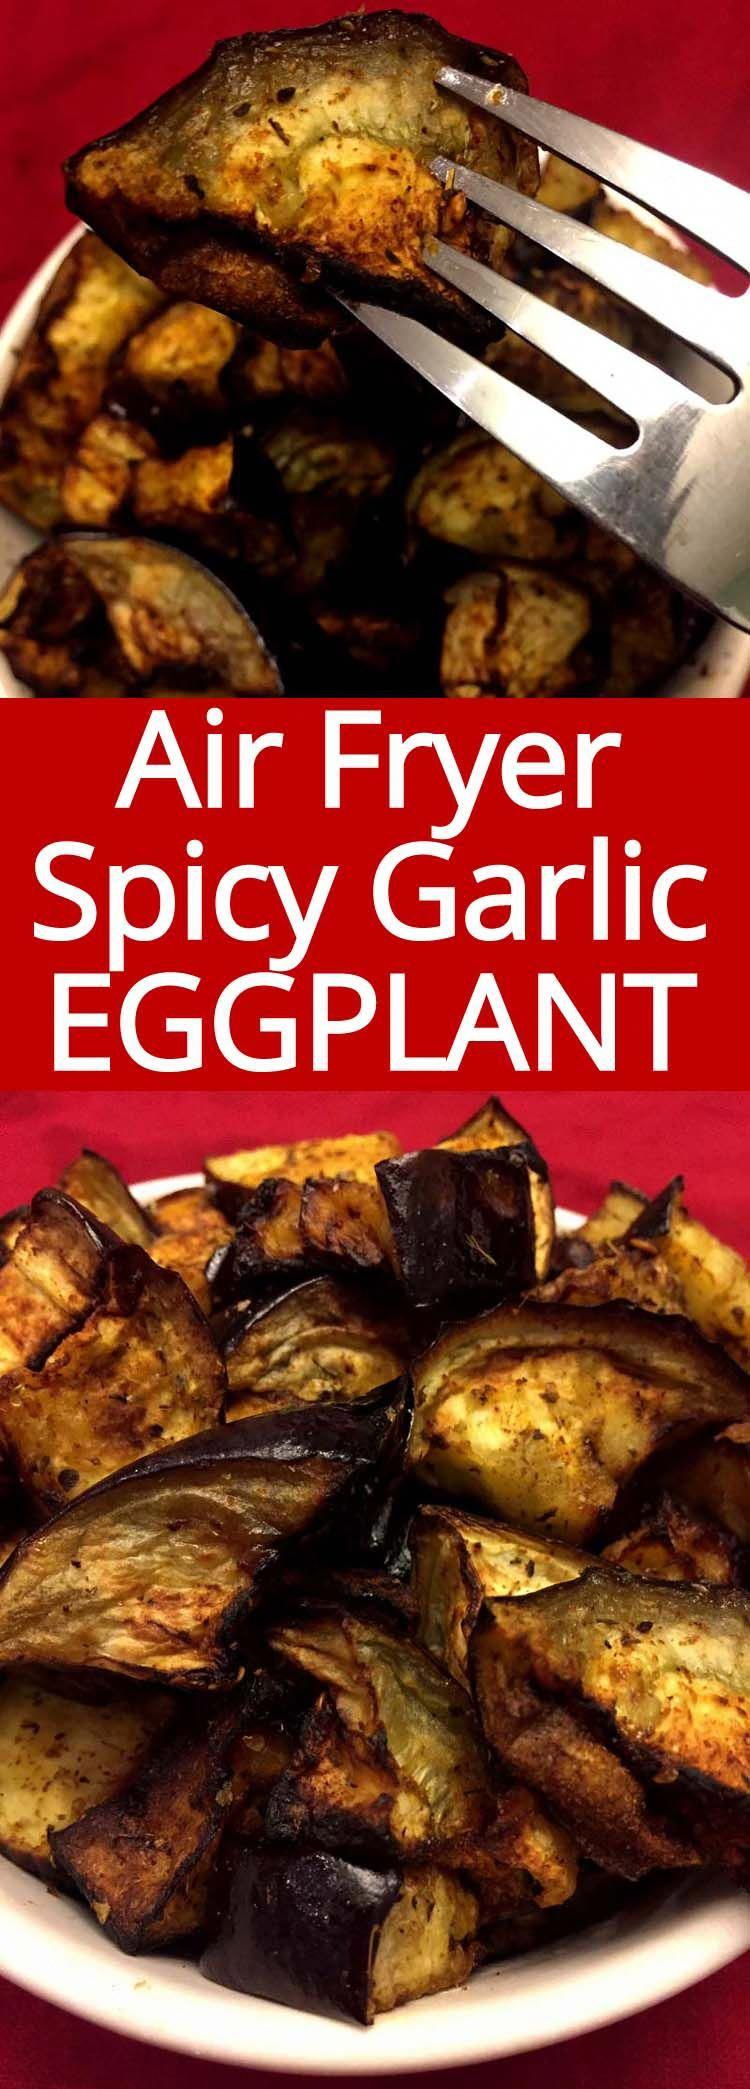 instructions on how to use an air fryer